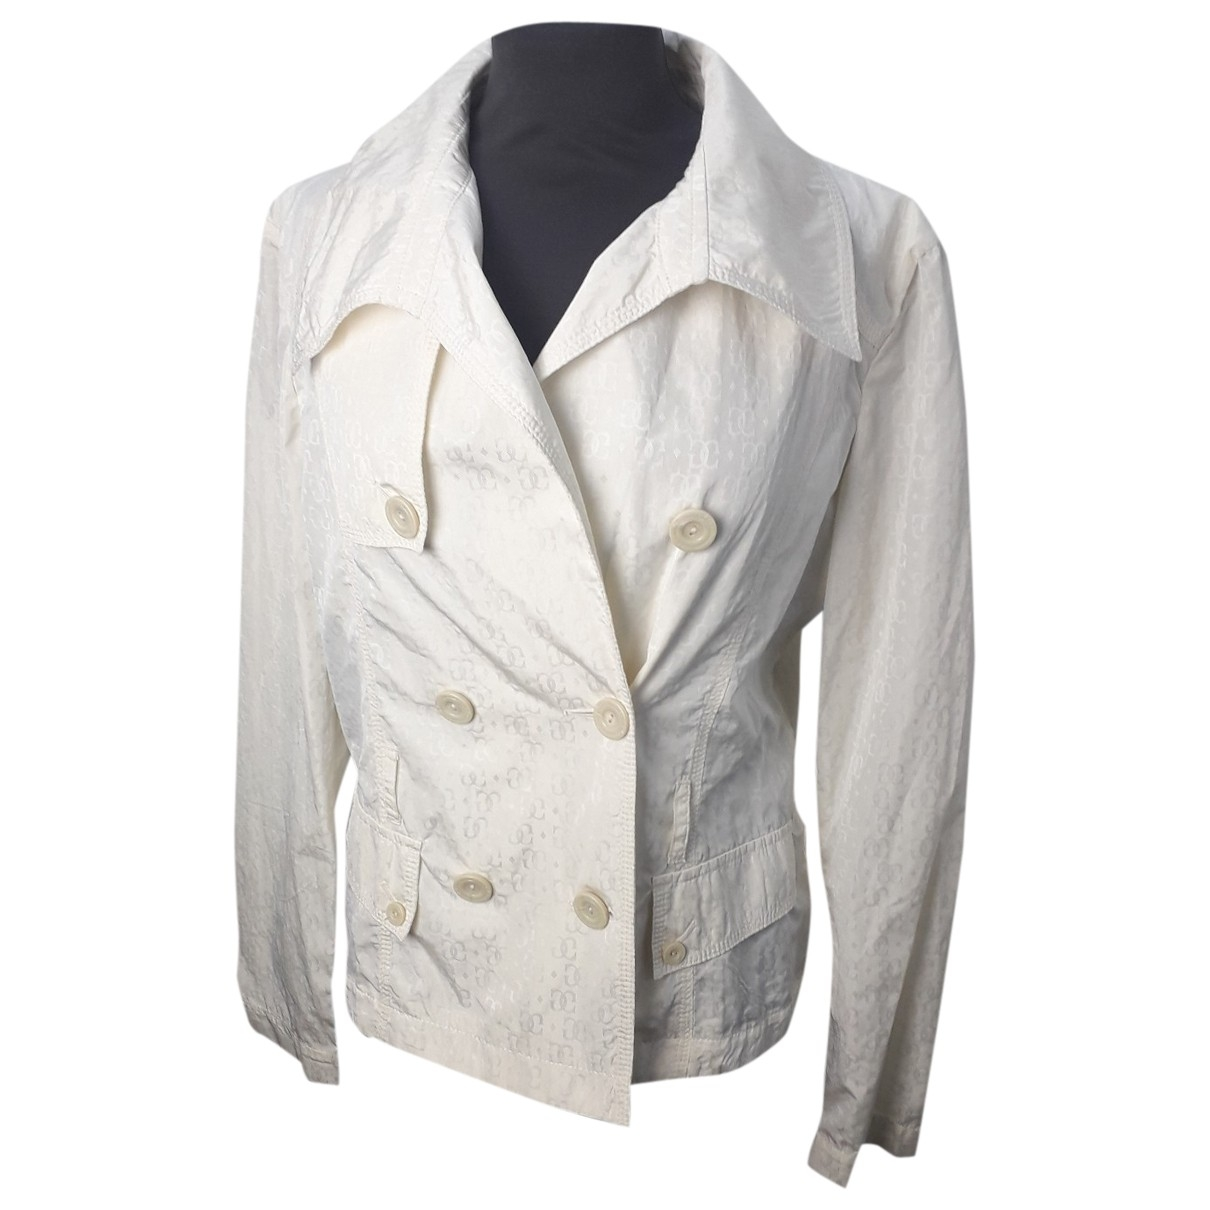 Guess \N White jacket for Women 46 IT